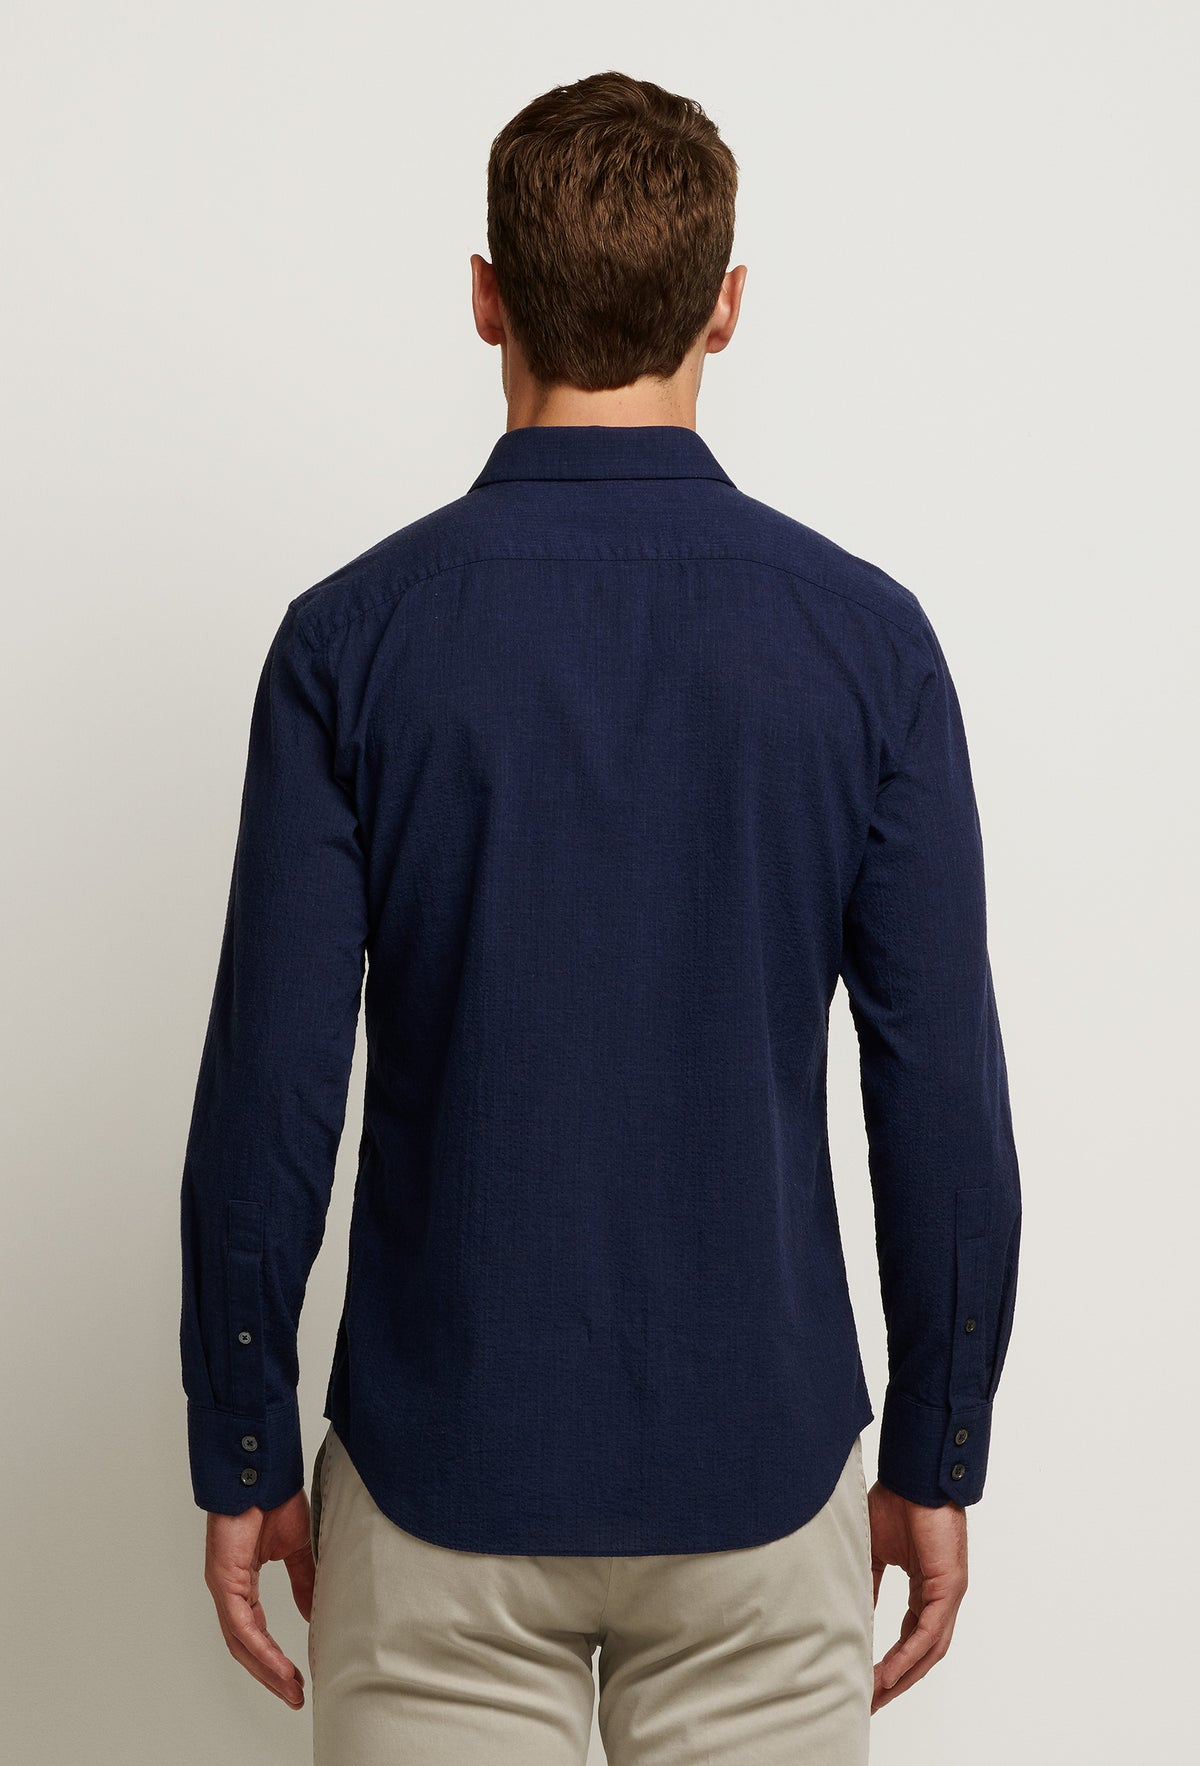 ZACHARY-PRELL-Alabashi-ShirtsModern-Menswear-New-Dress-Code